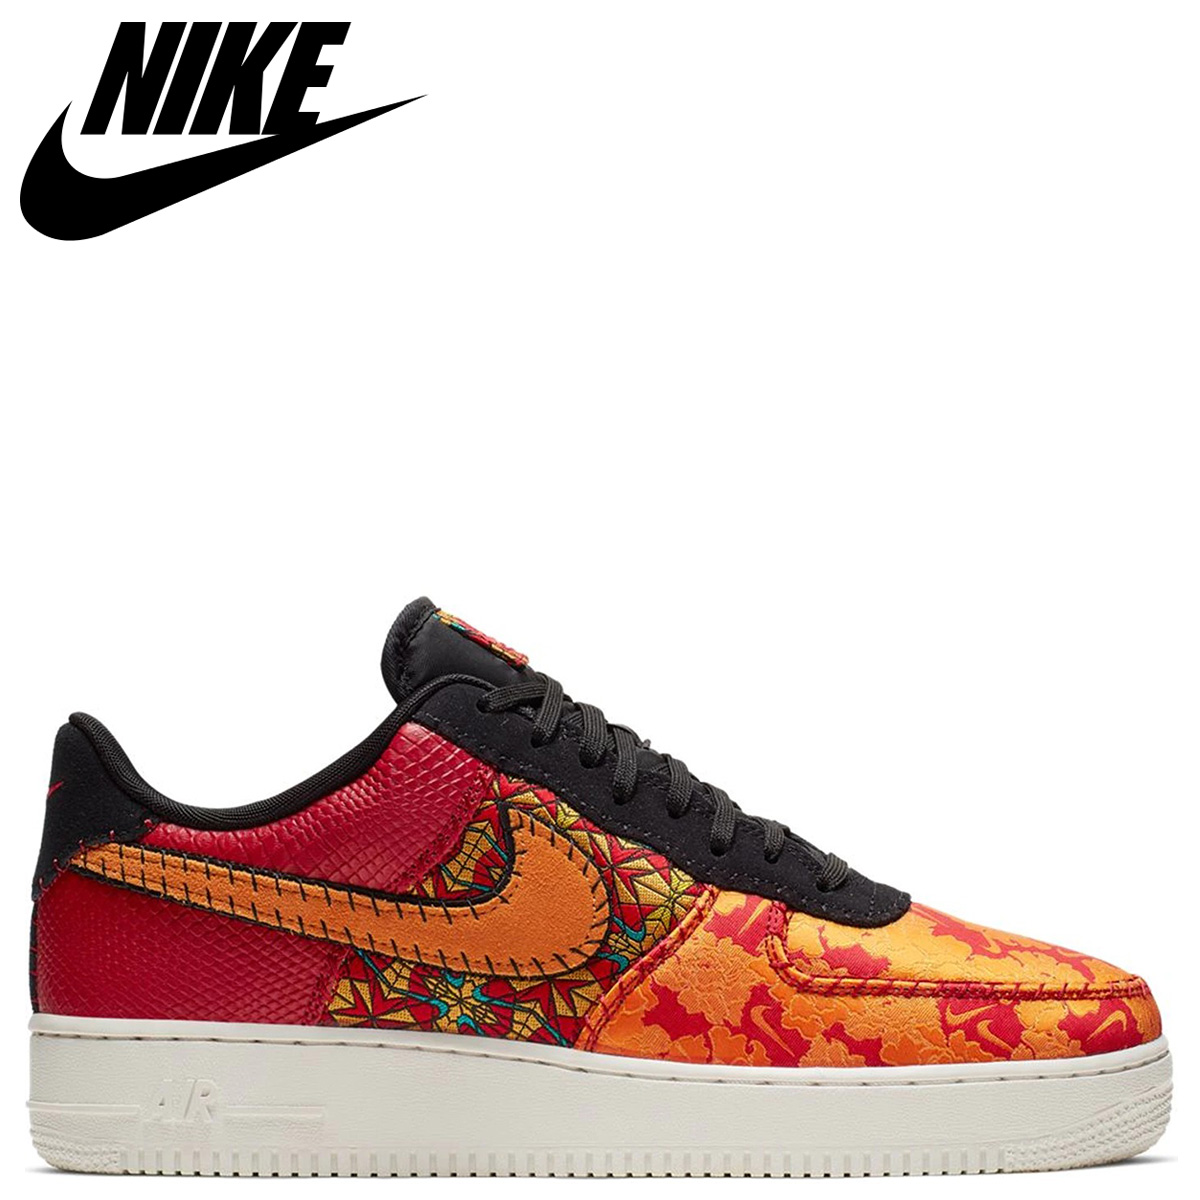 Nike NIKE air force 1 sneakers men AIR FORCE 1 07 PREMIUM 3 orange AT4144 601